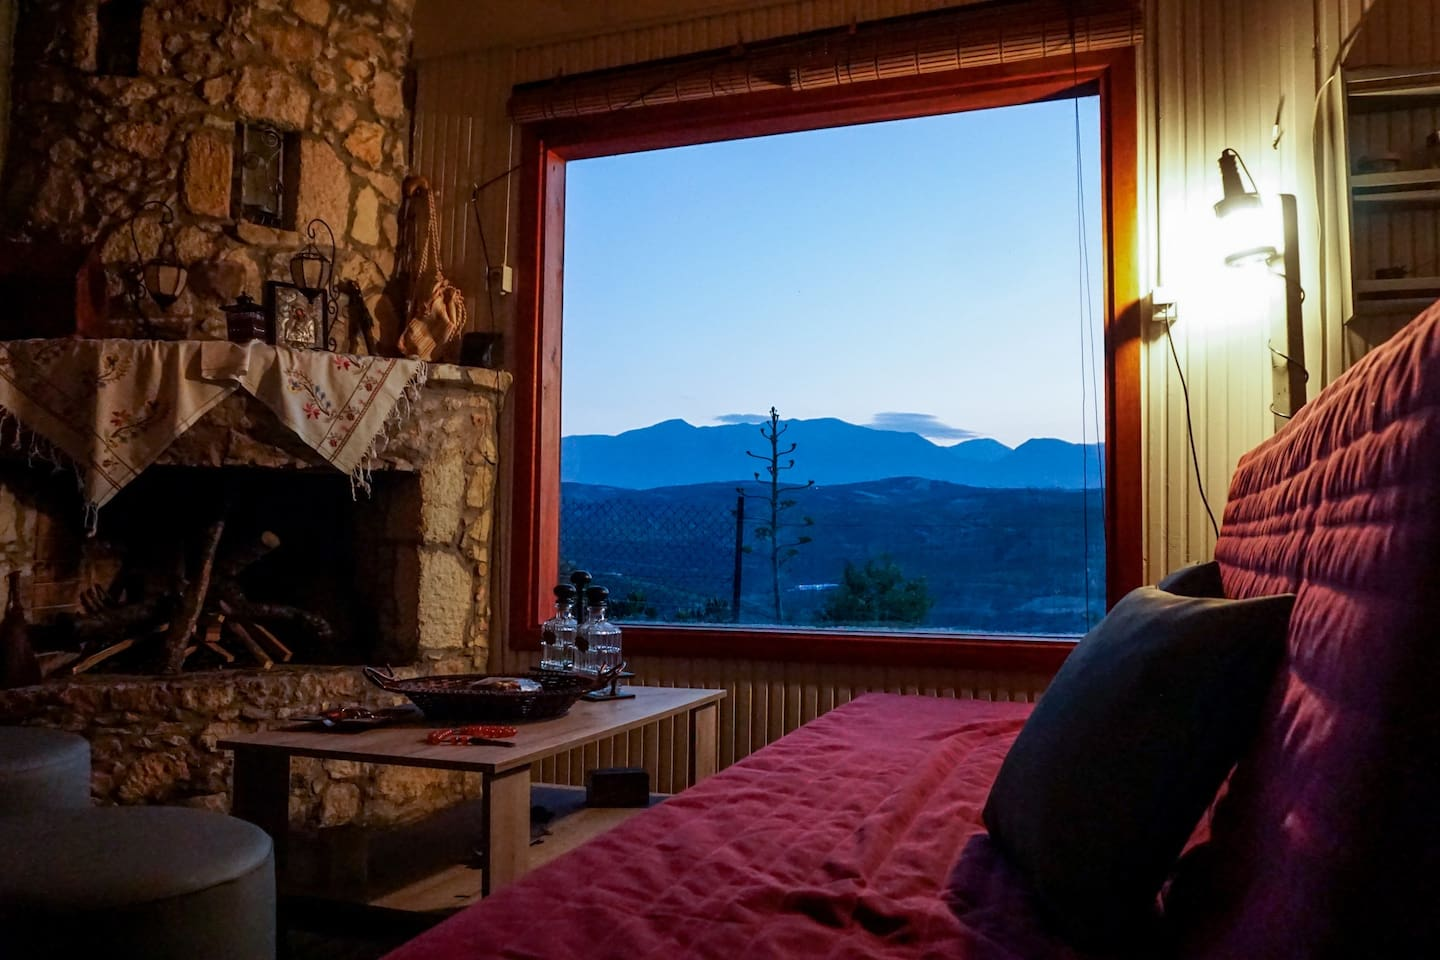 window overlooking nature and mountains